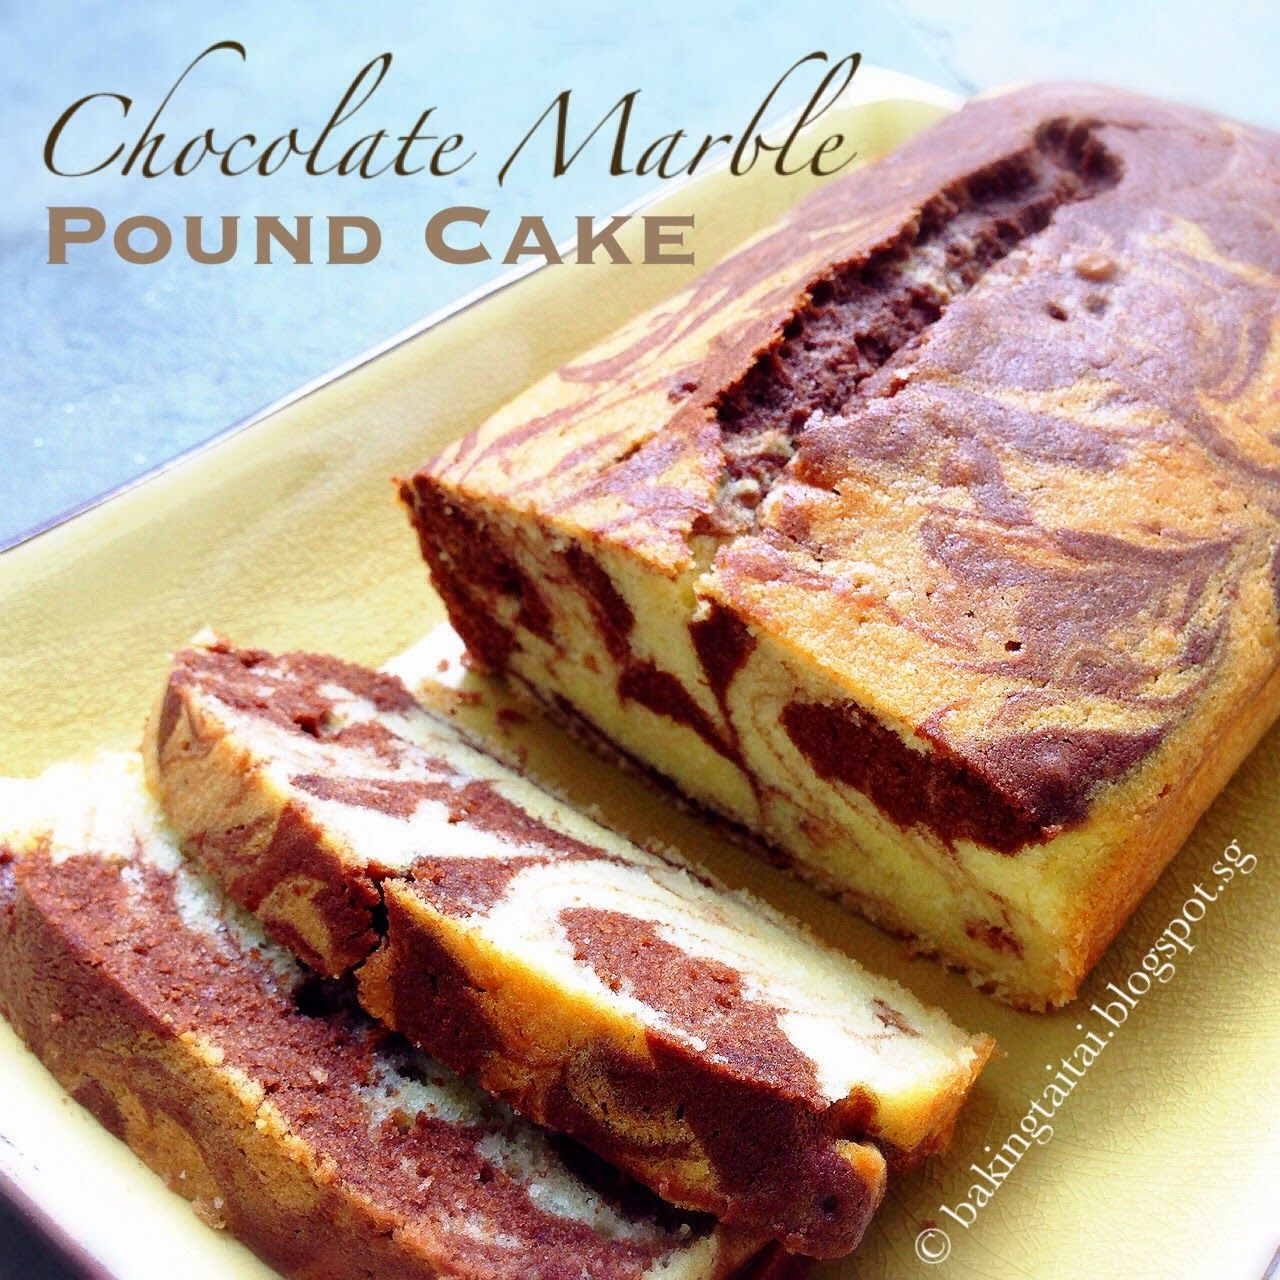 I was a huge fan of sara lee pound cakes before i picked